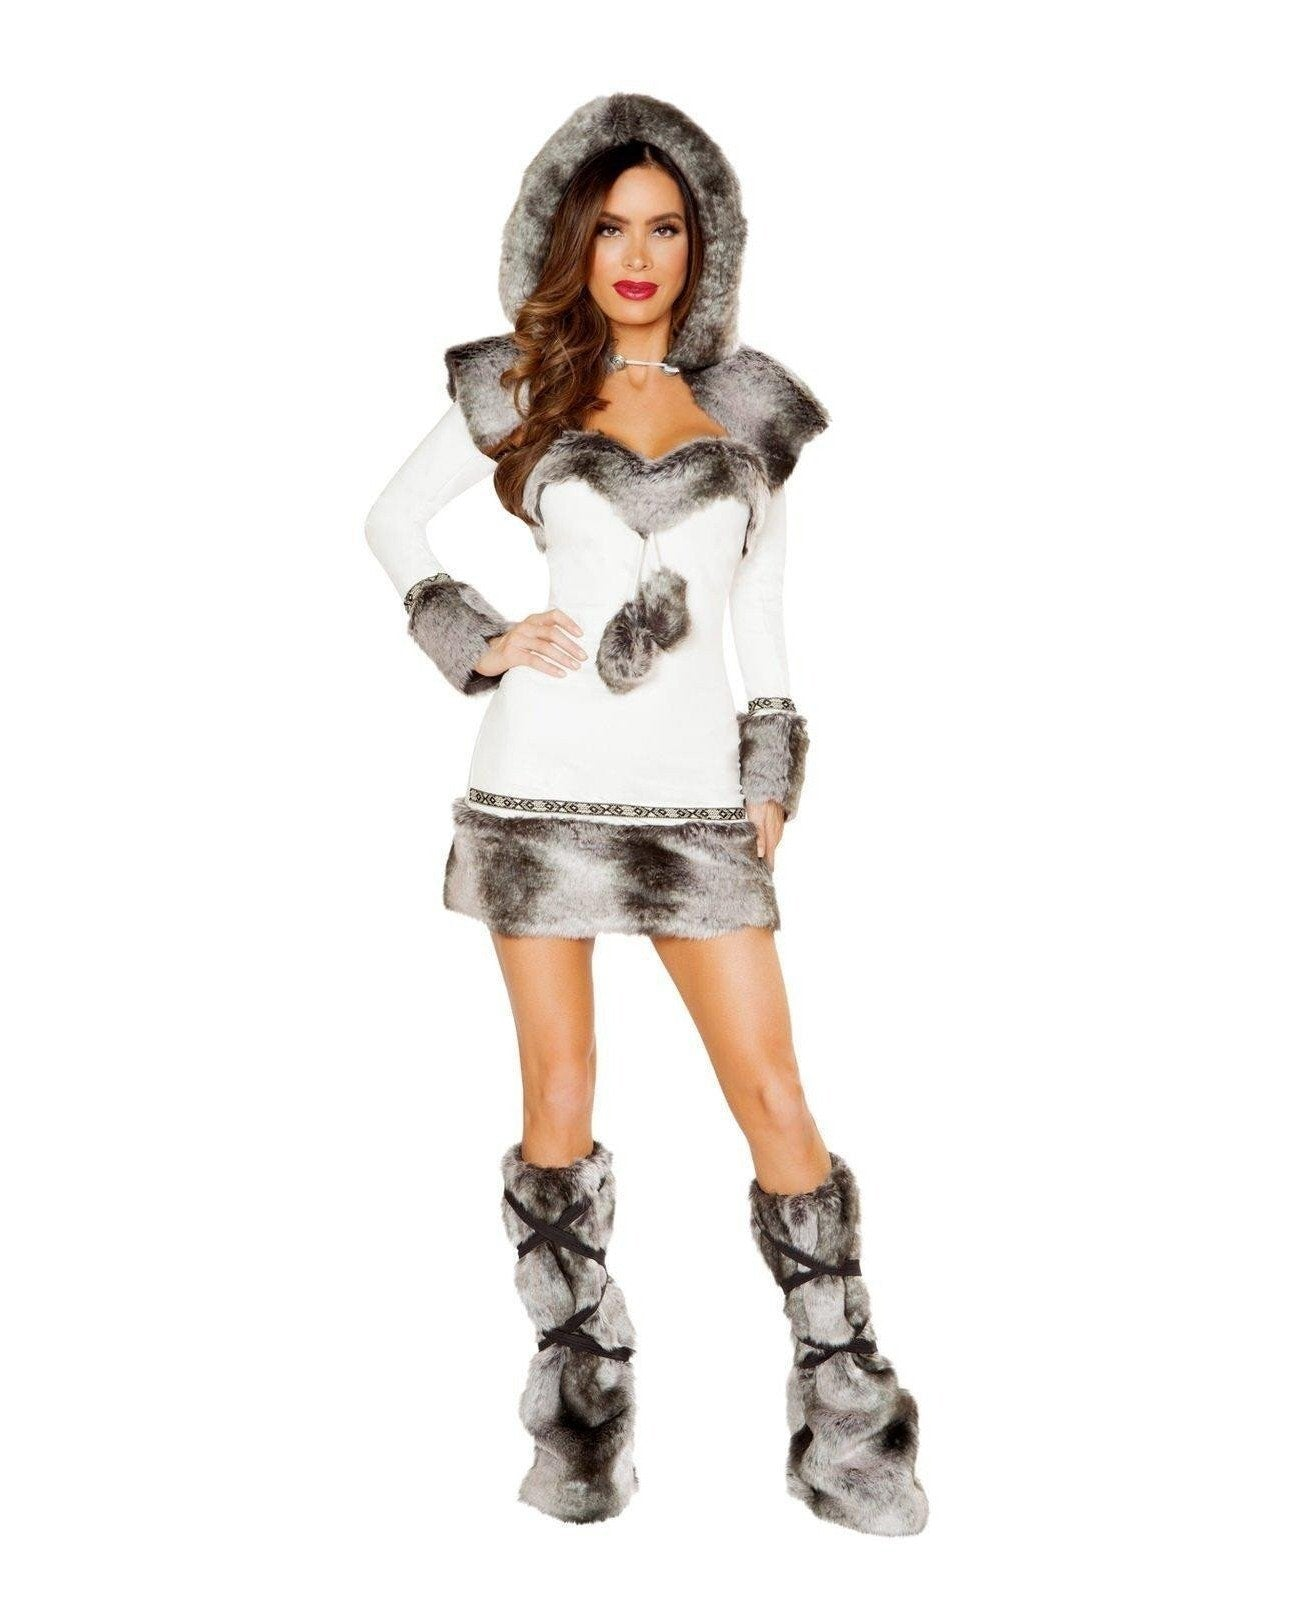 Winter Hottie Costume Costumes Size SmallColor White/GreyNakees